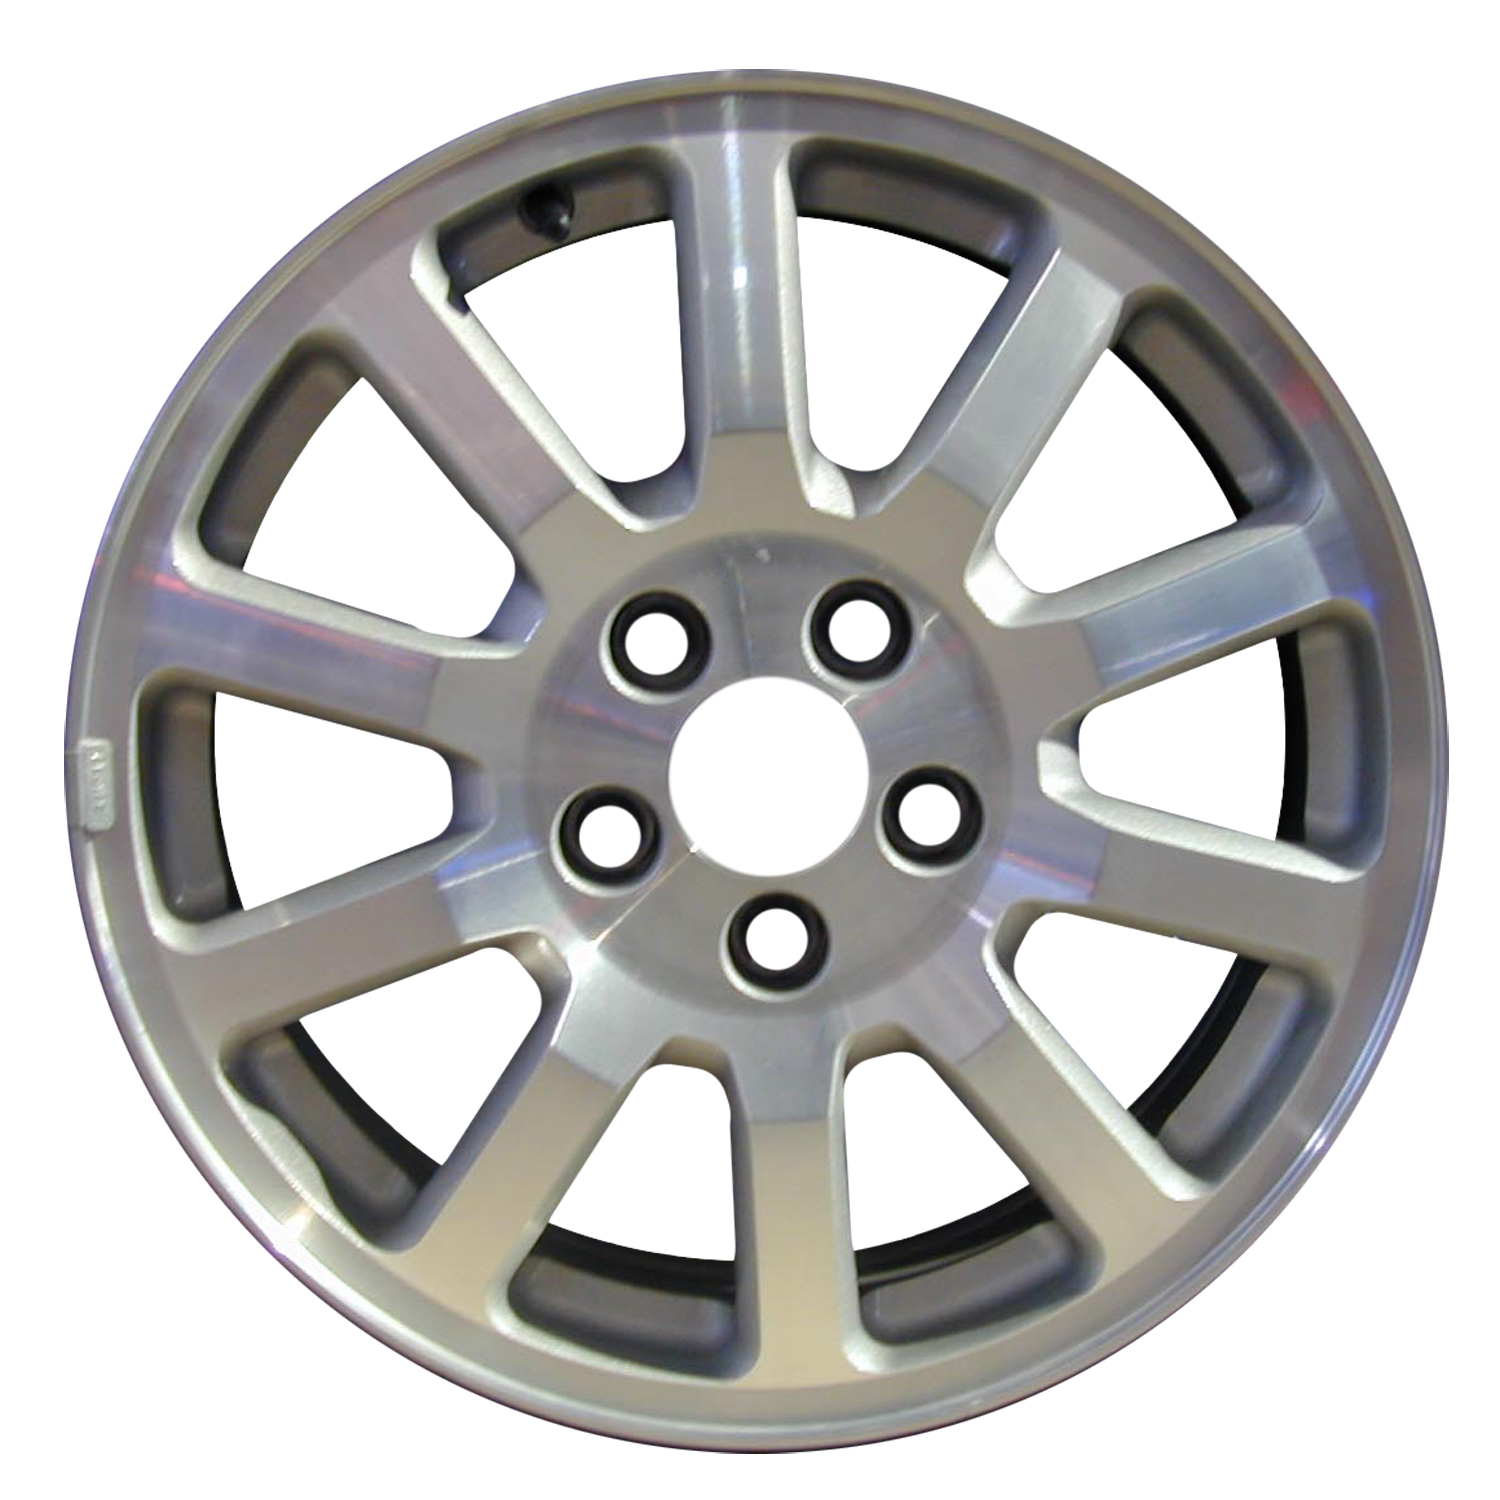 2005-2007 Buick Rendezvous  17x6.5 Alloy Wheel, Rim Sparkle Silver Textured with Machined Face - 4063